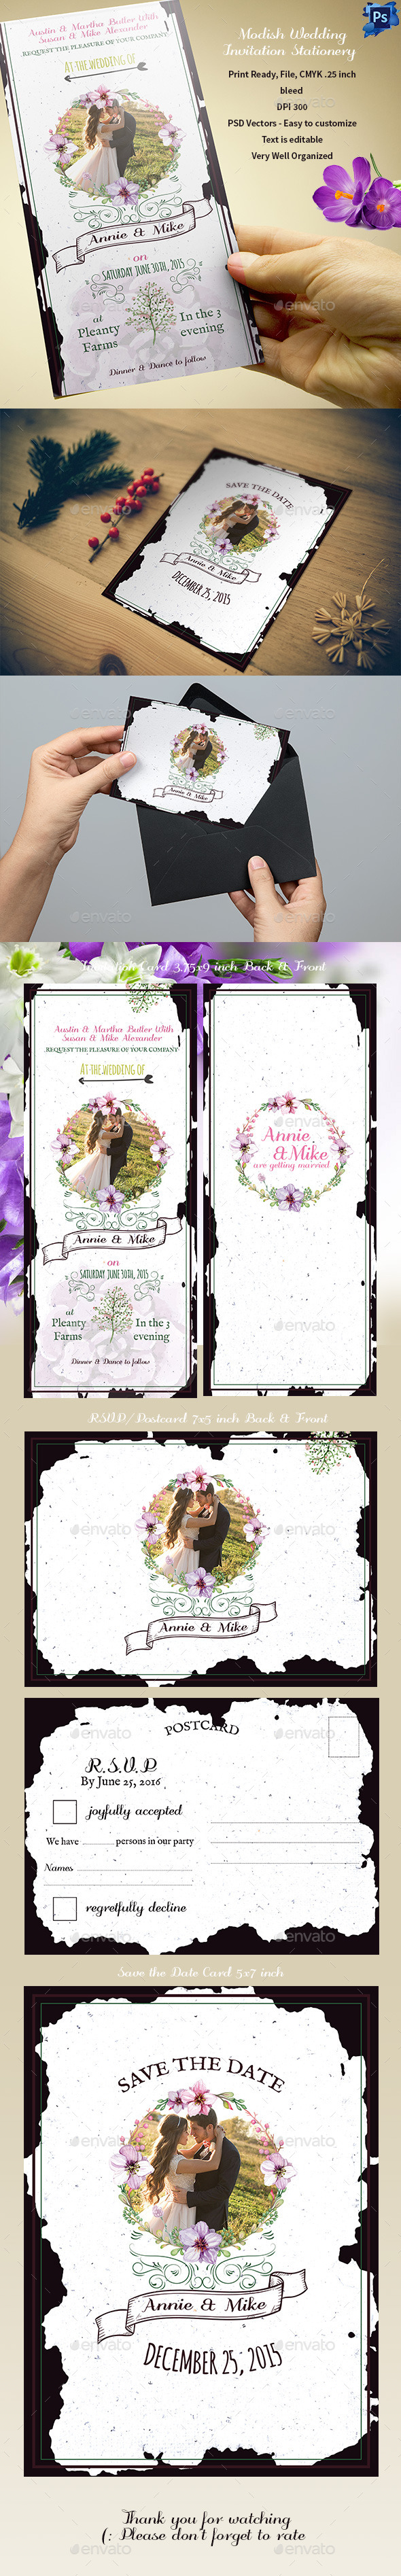 Modish Wedding Invitation Stationery - Weddings Cards & Invites